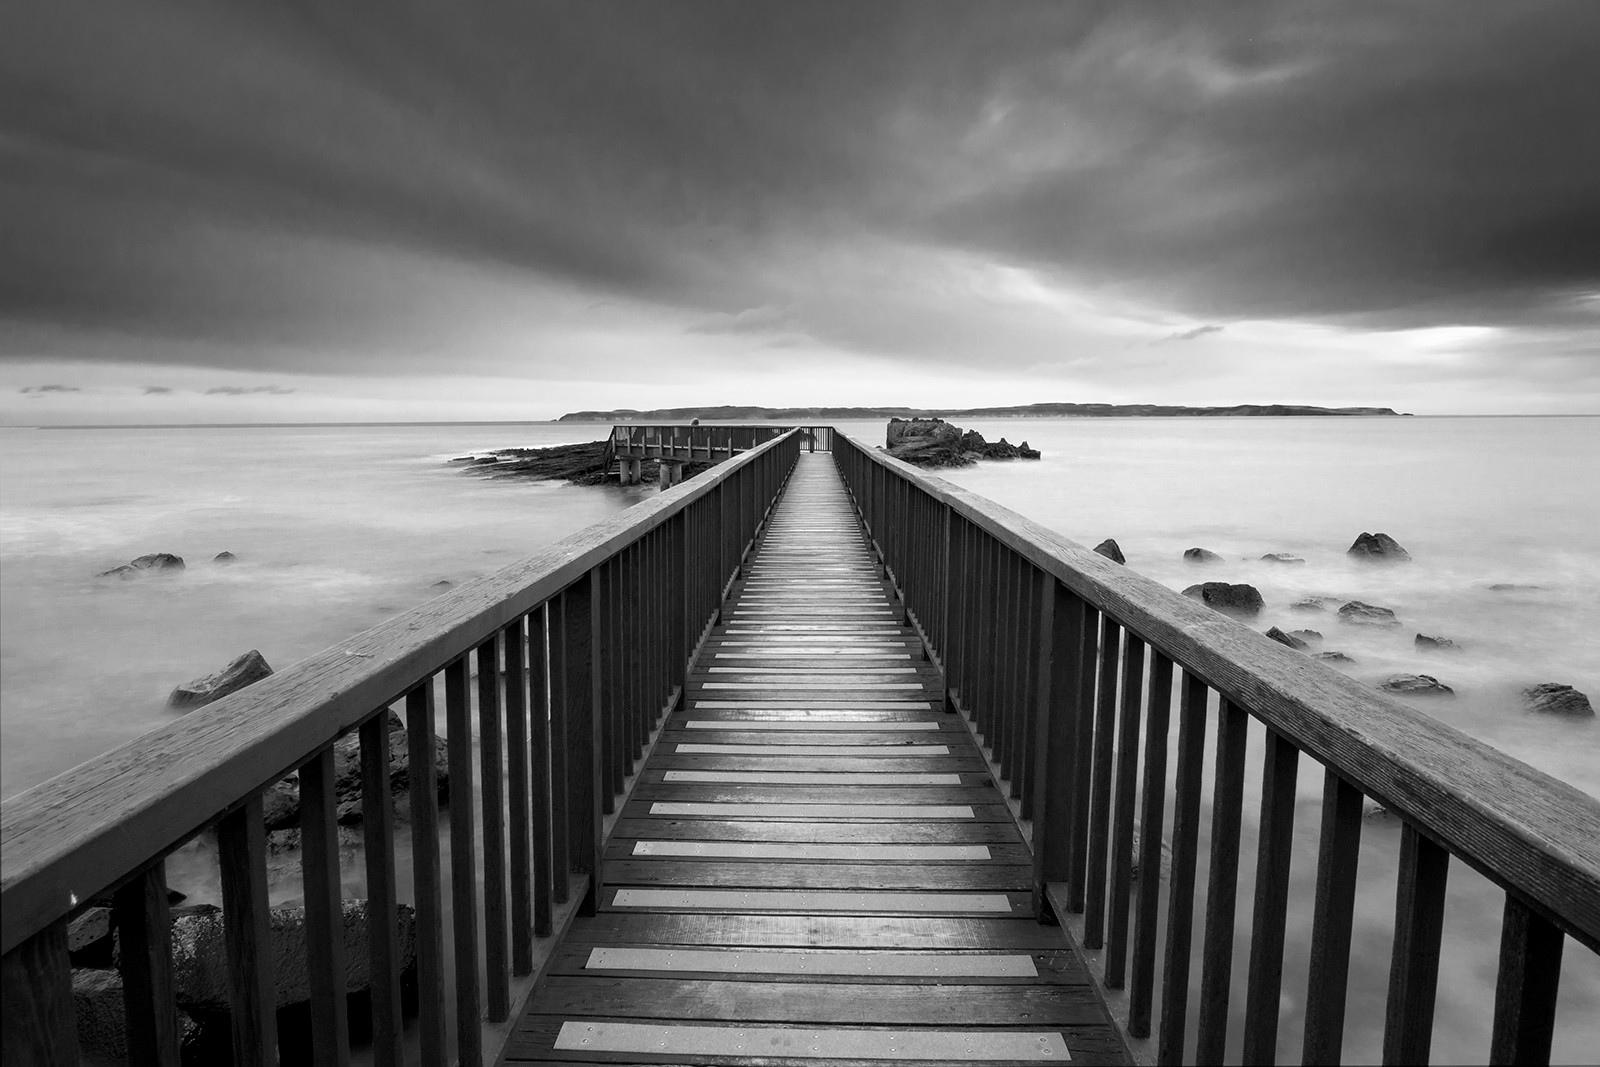 MONO - The_Bridge by Marie_McGovern (11 marks)